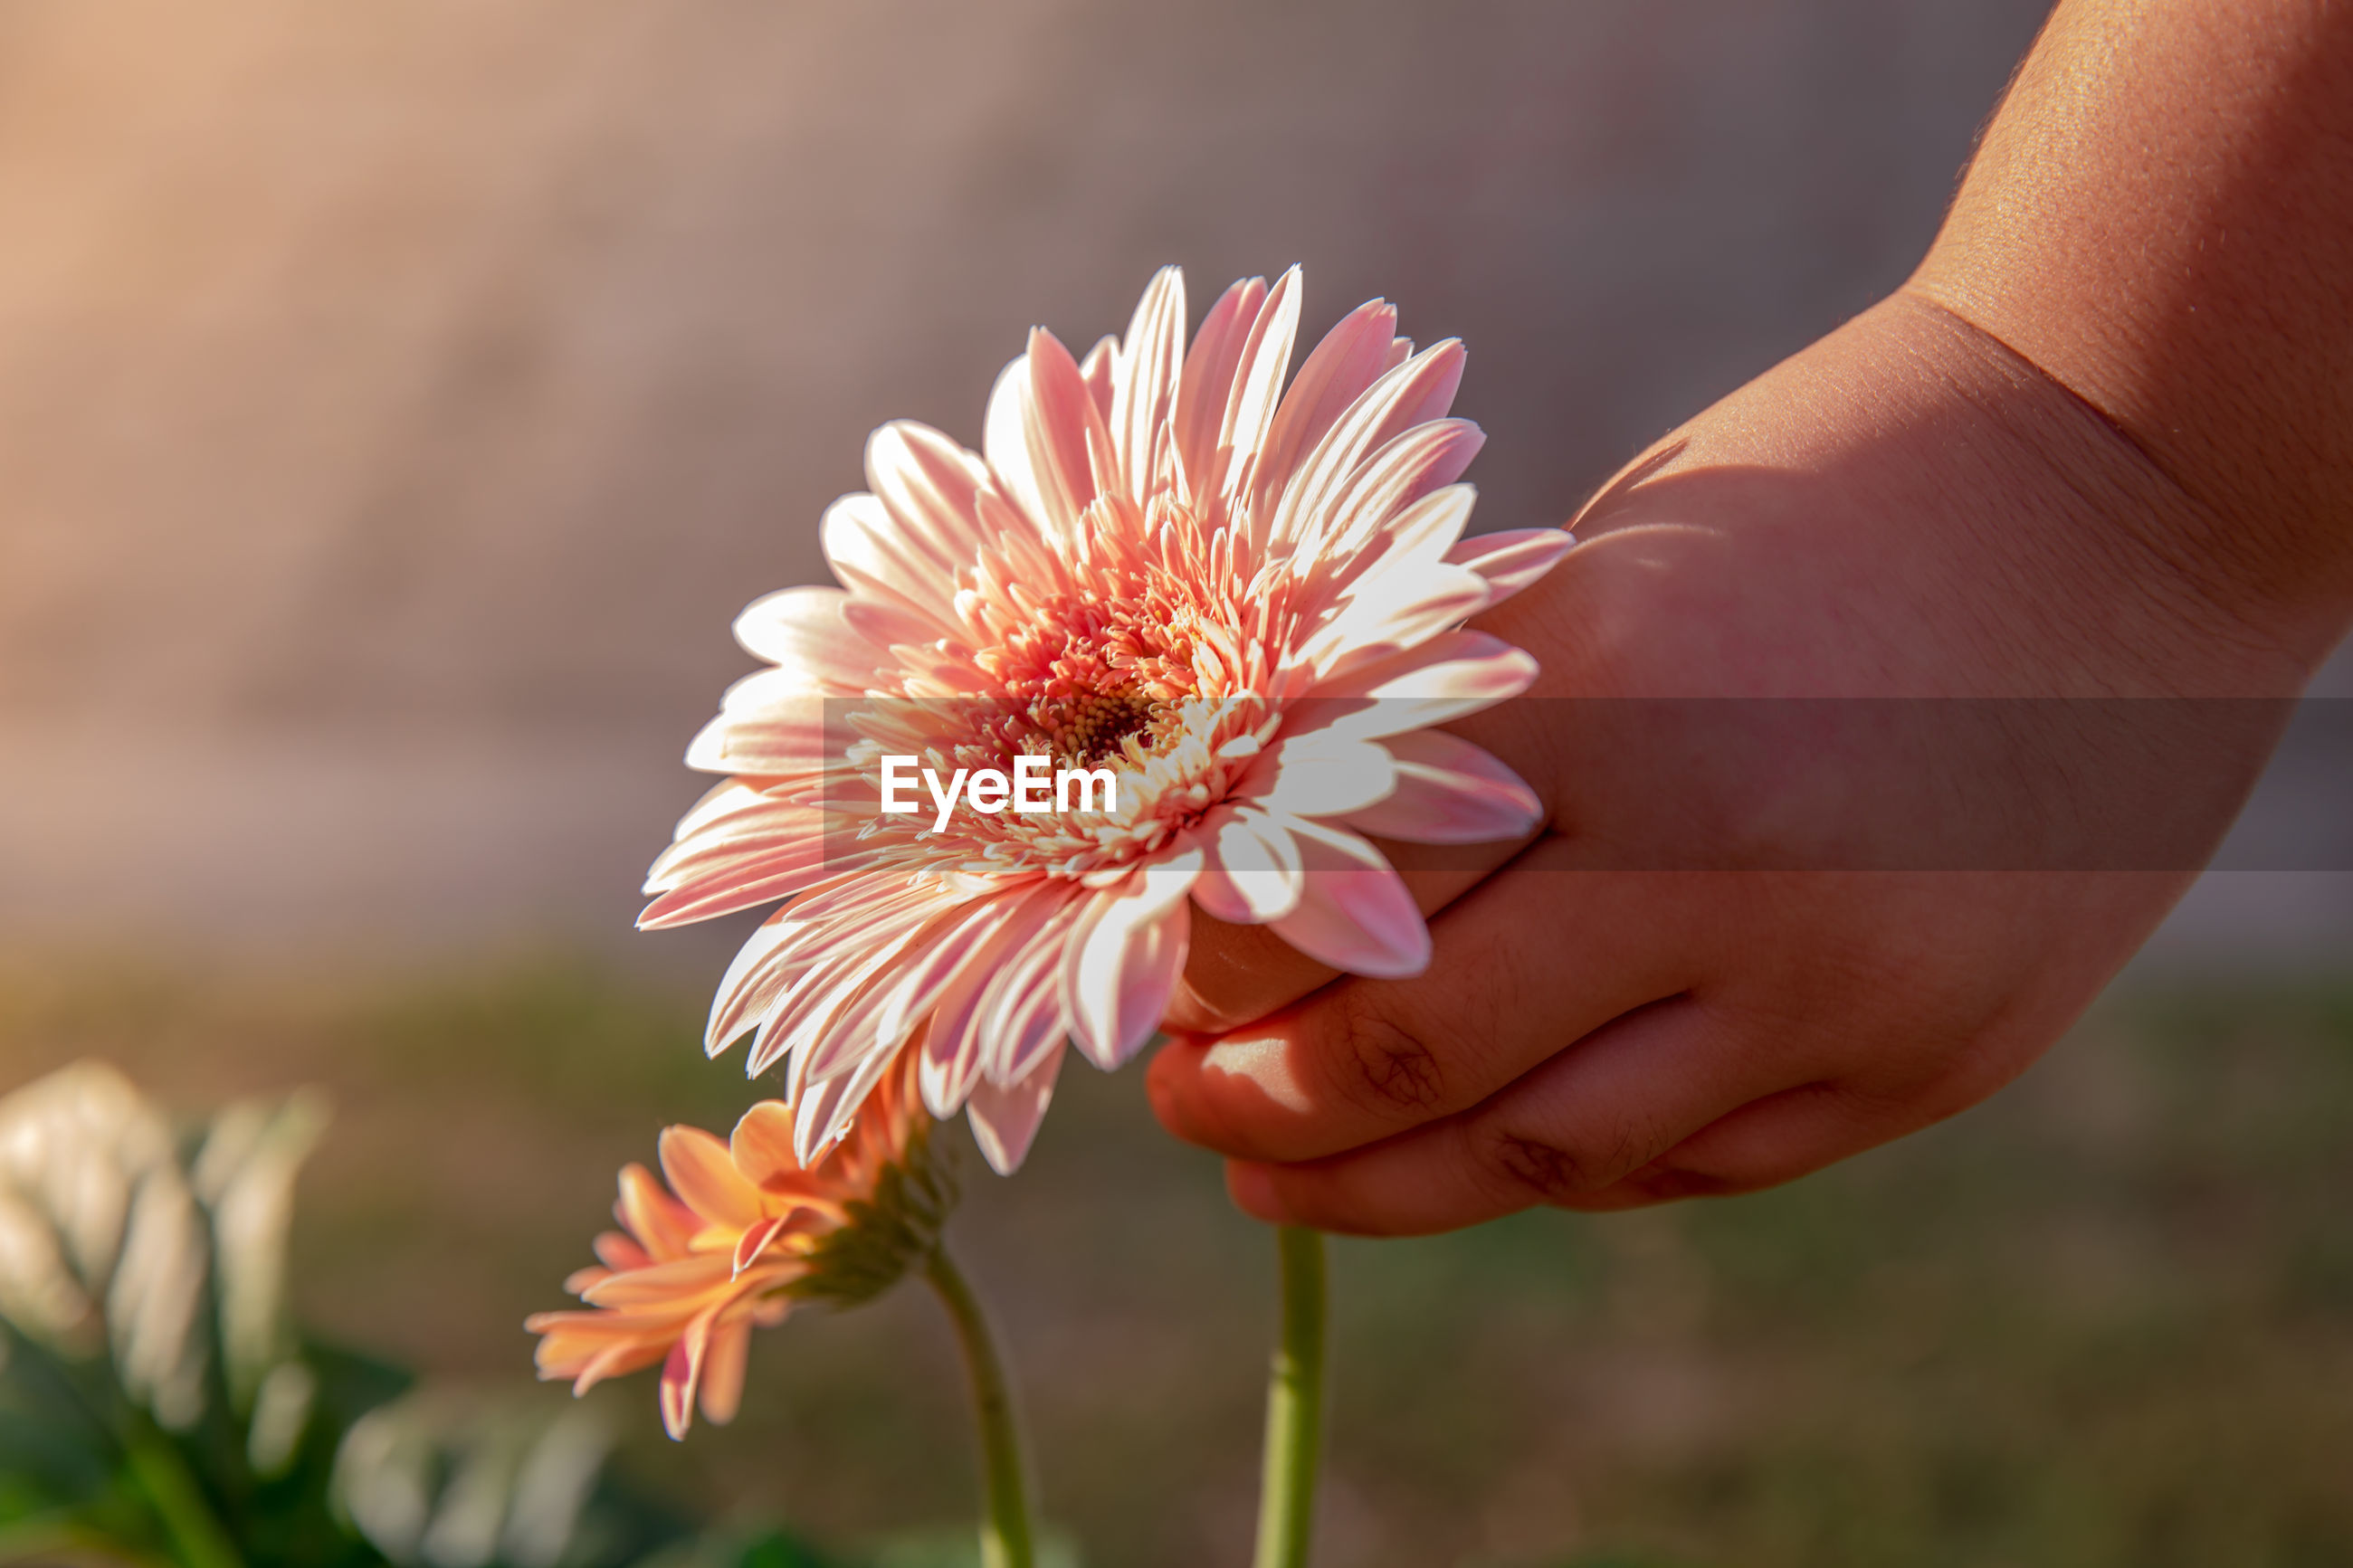 Cropped hands of person holding pink flower